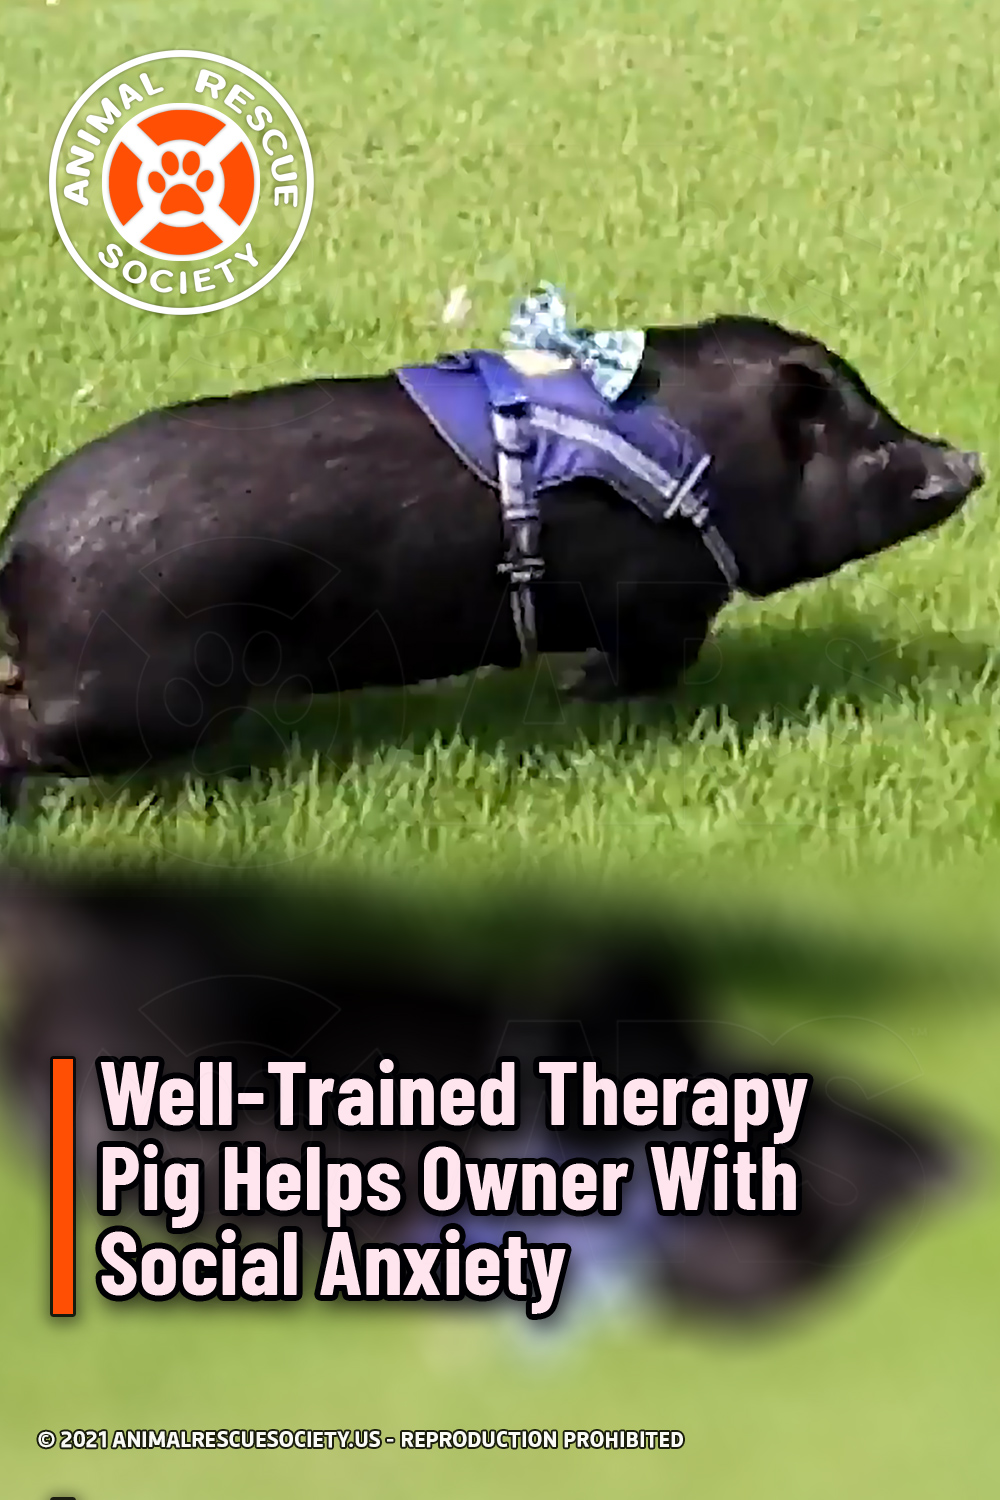 Well-Trained Therapy Pig Helps Owner With Social Anxiety